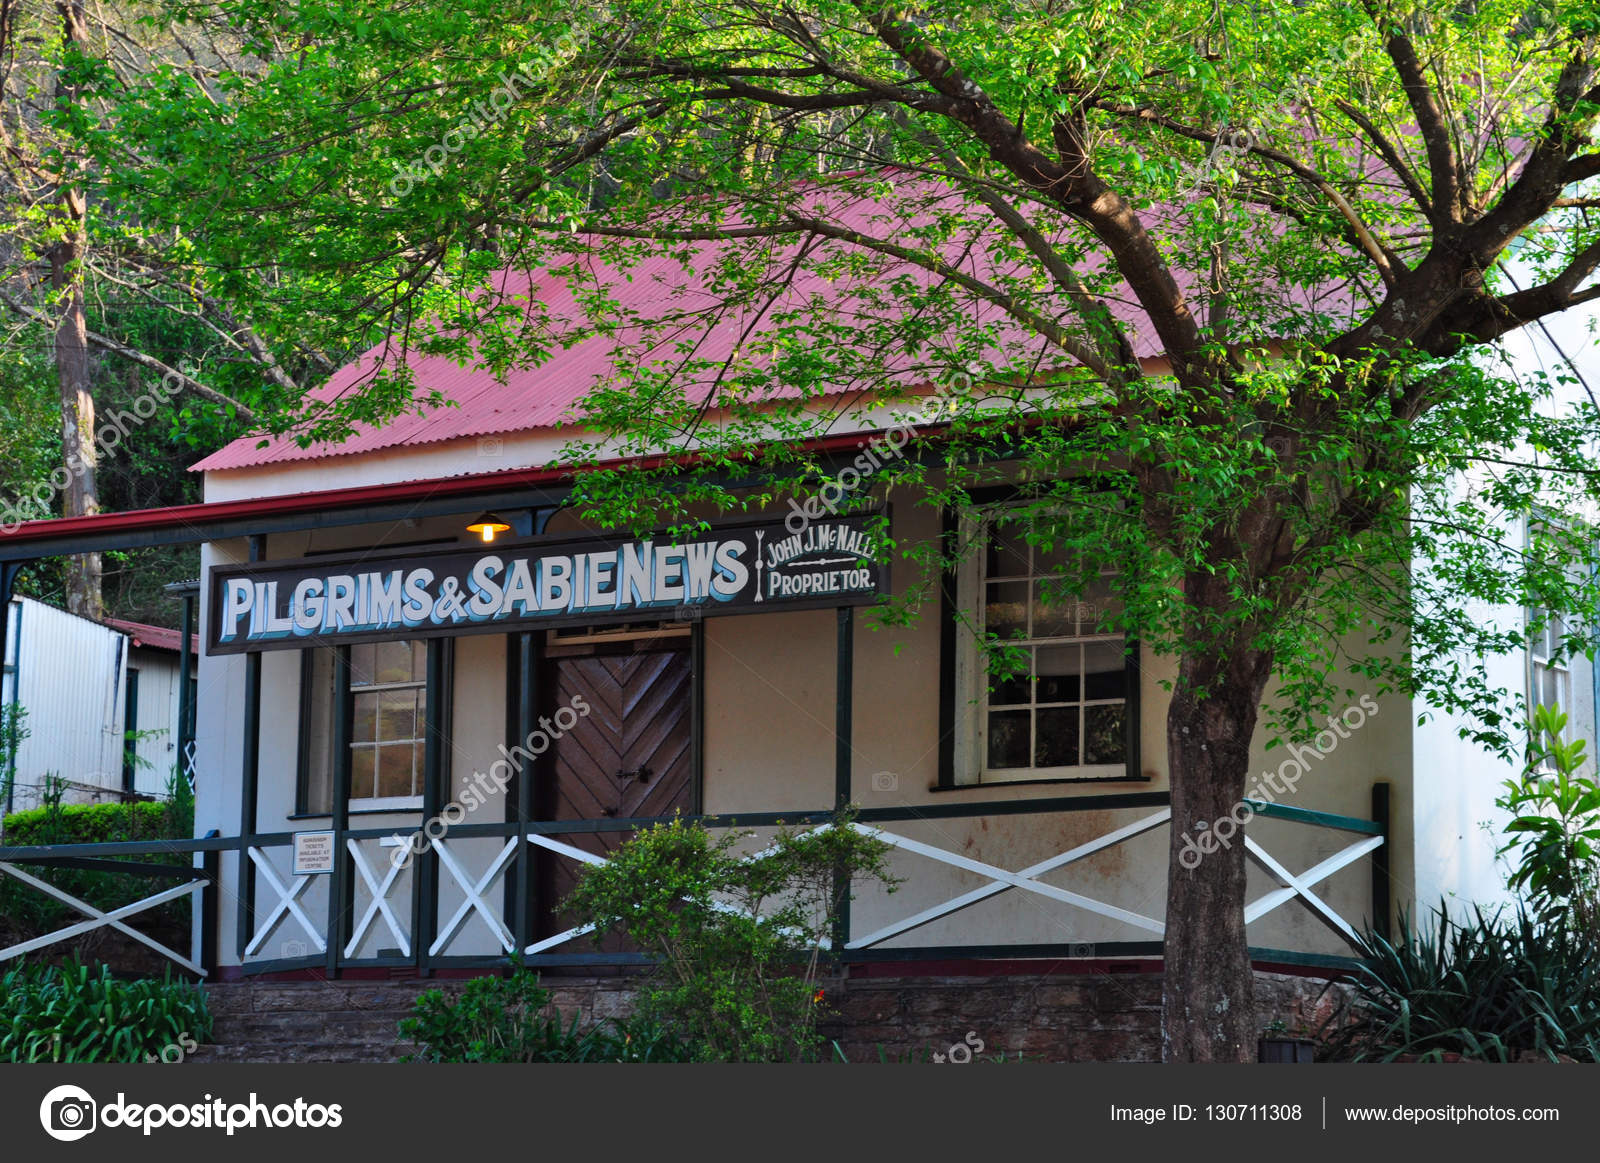 South Africa: Pilgrim's and Sabie News Printing Museum